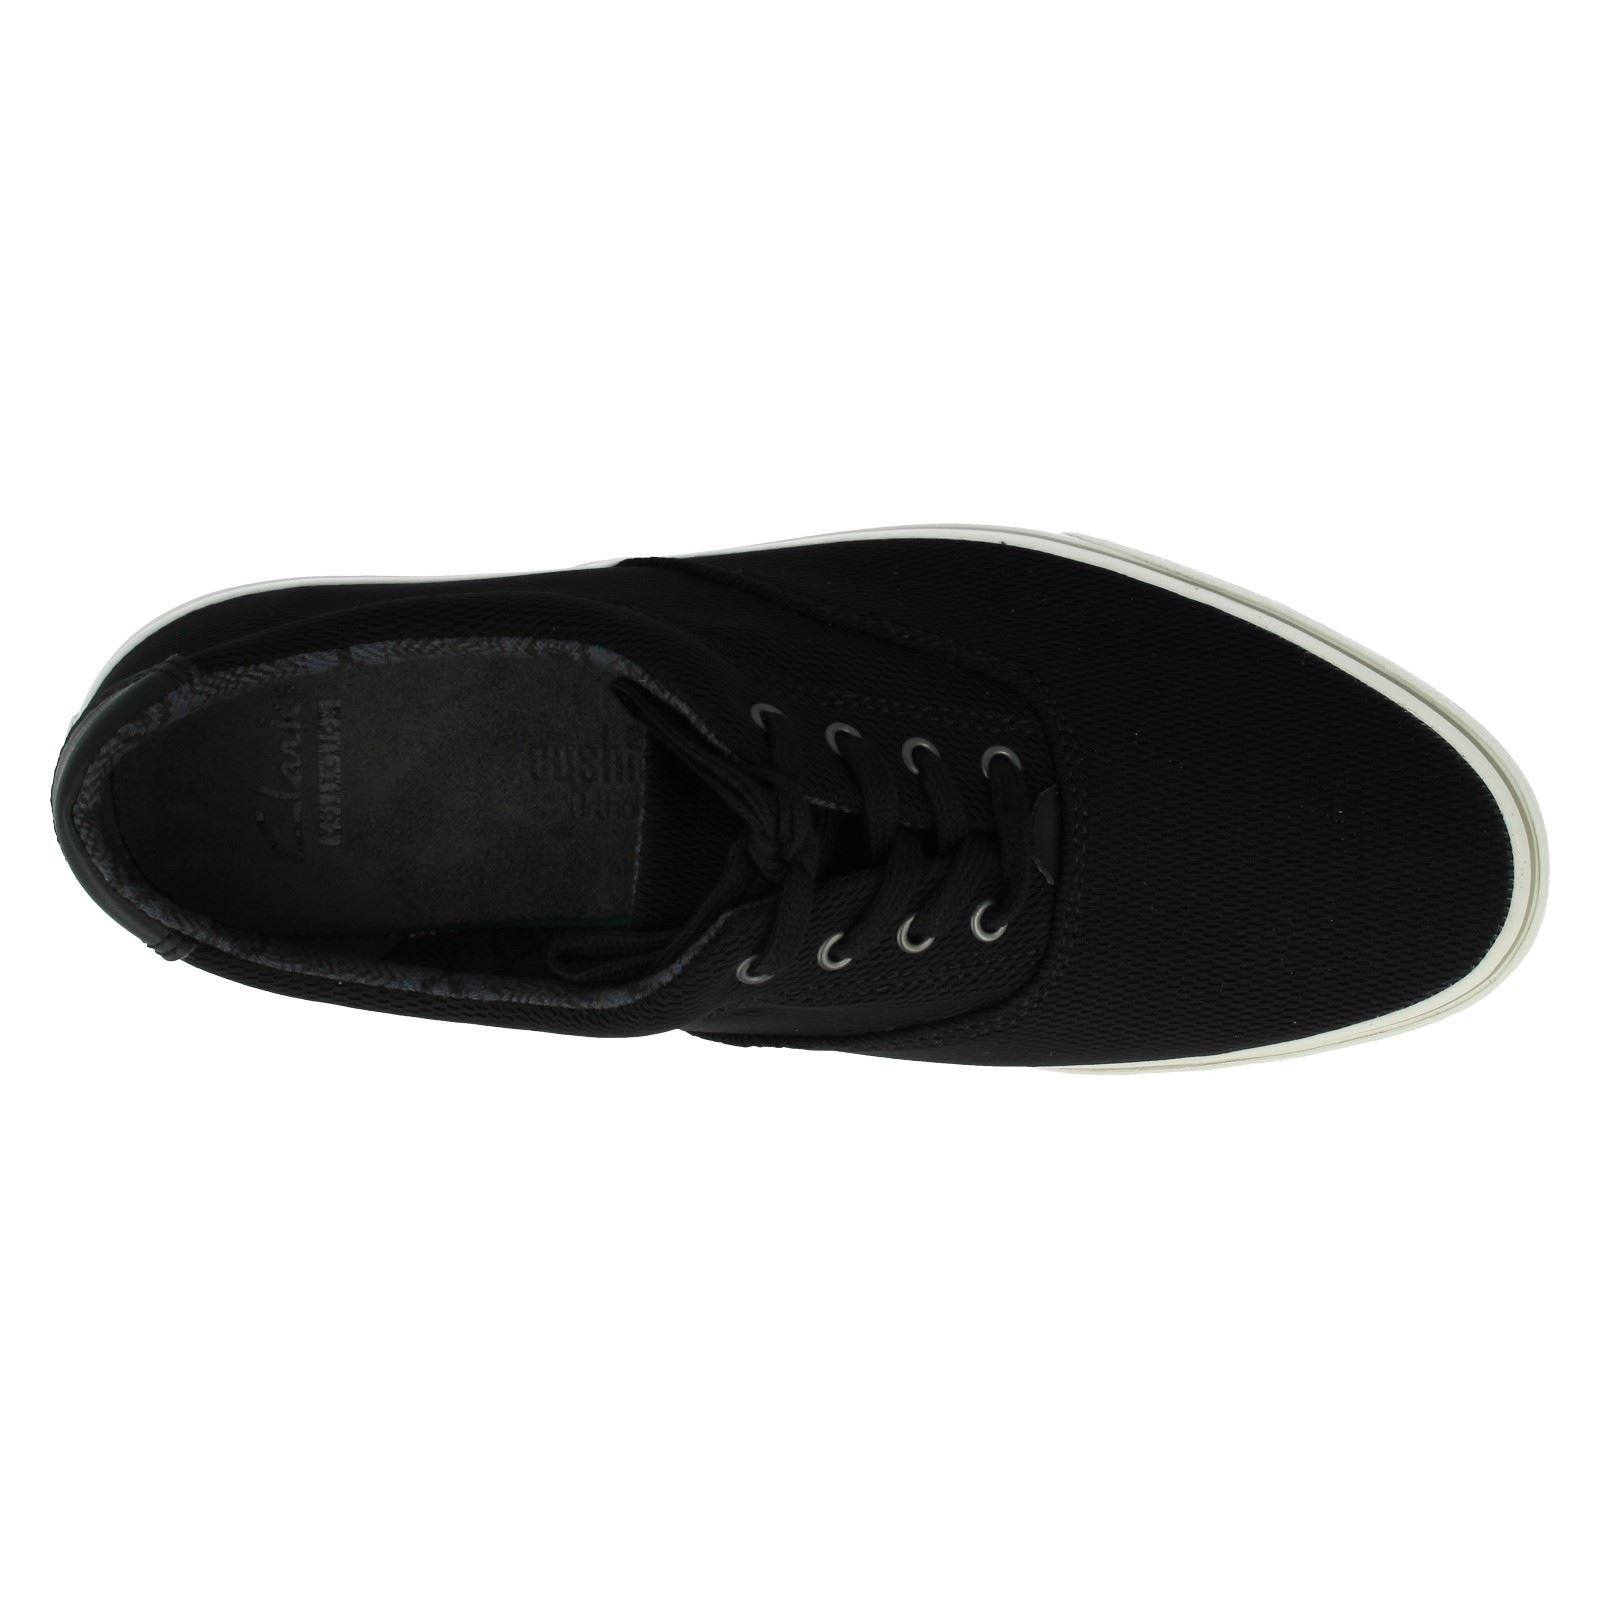 Men's Clarks Lace Up Casual Canvas Shoes The Style - Gosling Walk